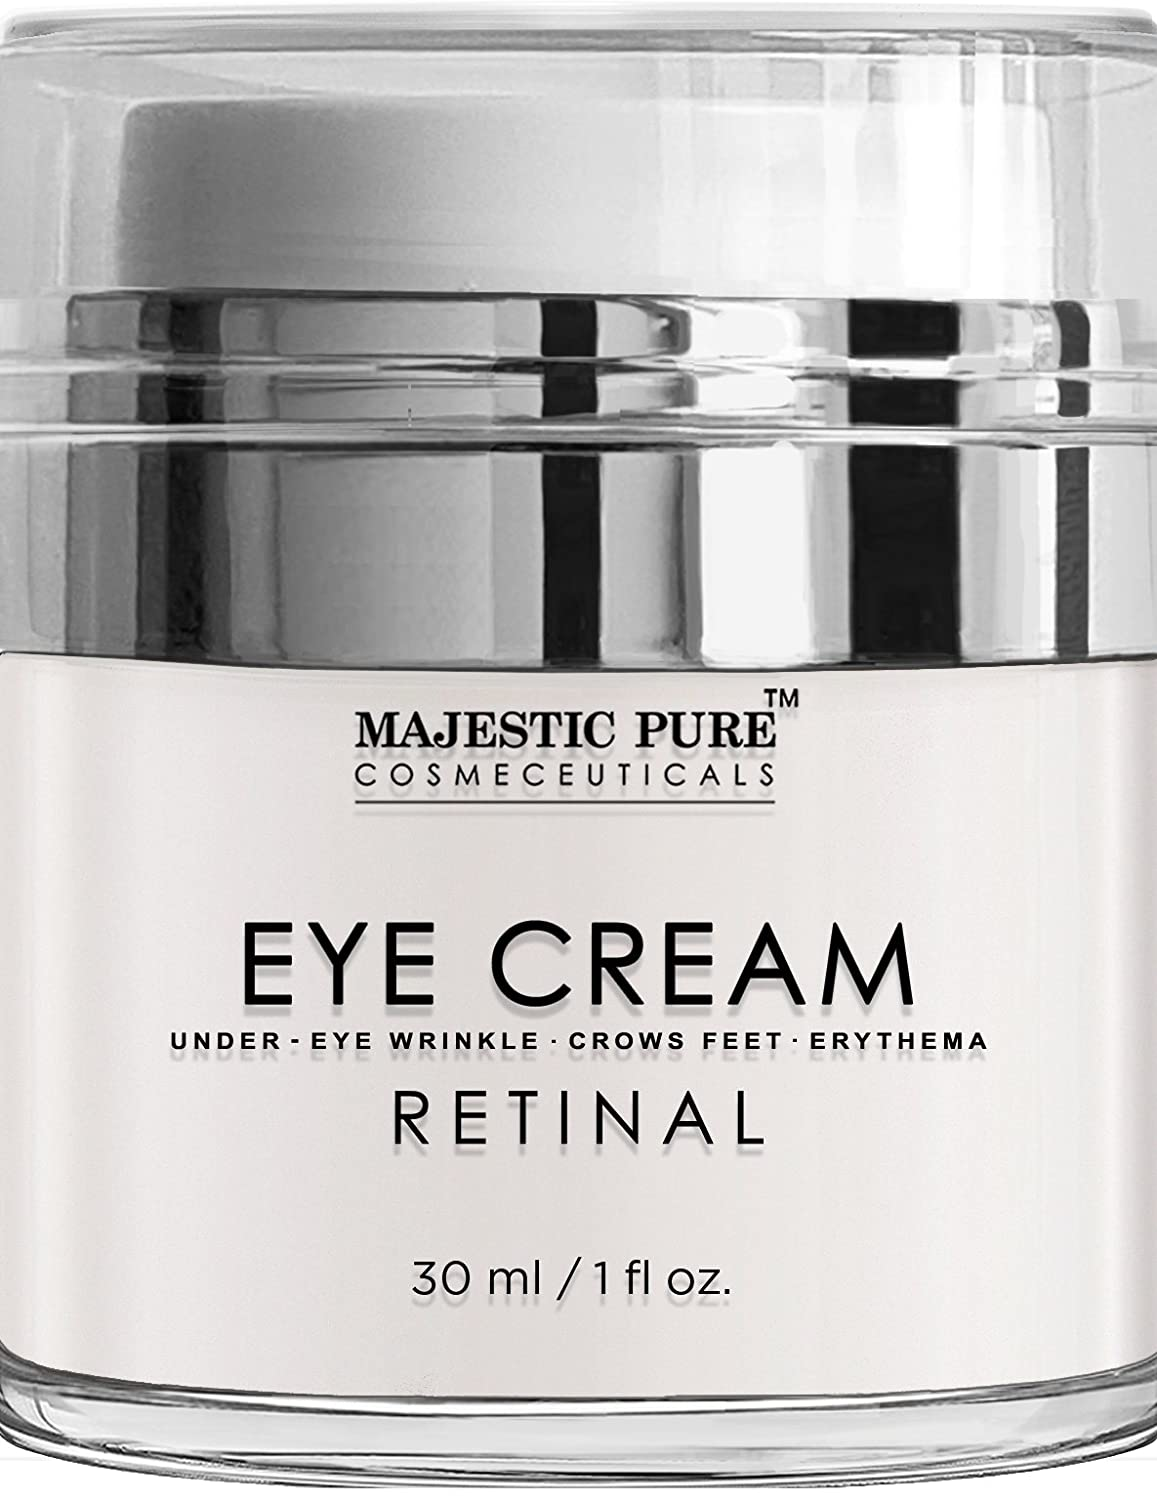 Majestic Pure Retinal Eye Cream, Reduces the Appearances of Winkles, Dark Circles, Puffiness, Crow Feet and Hyperpigmentation, 1 fl. oz